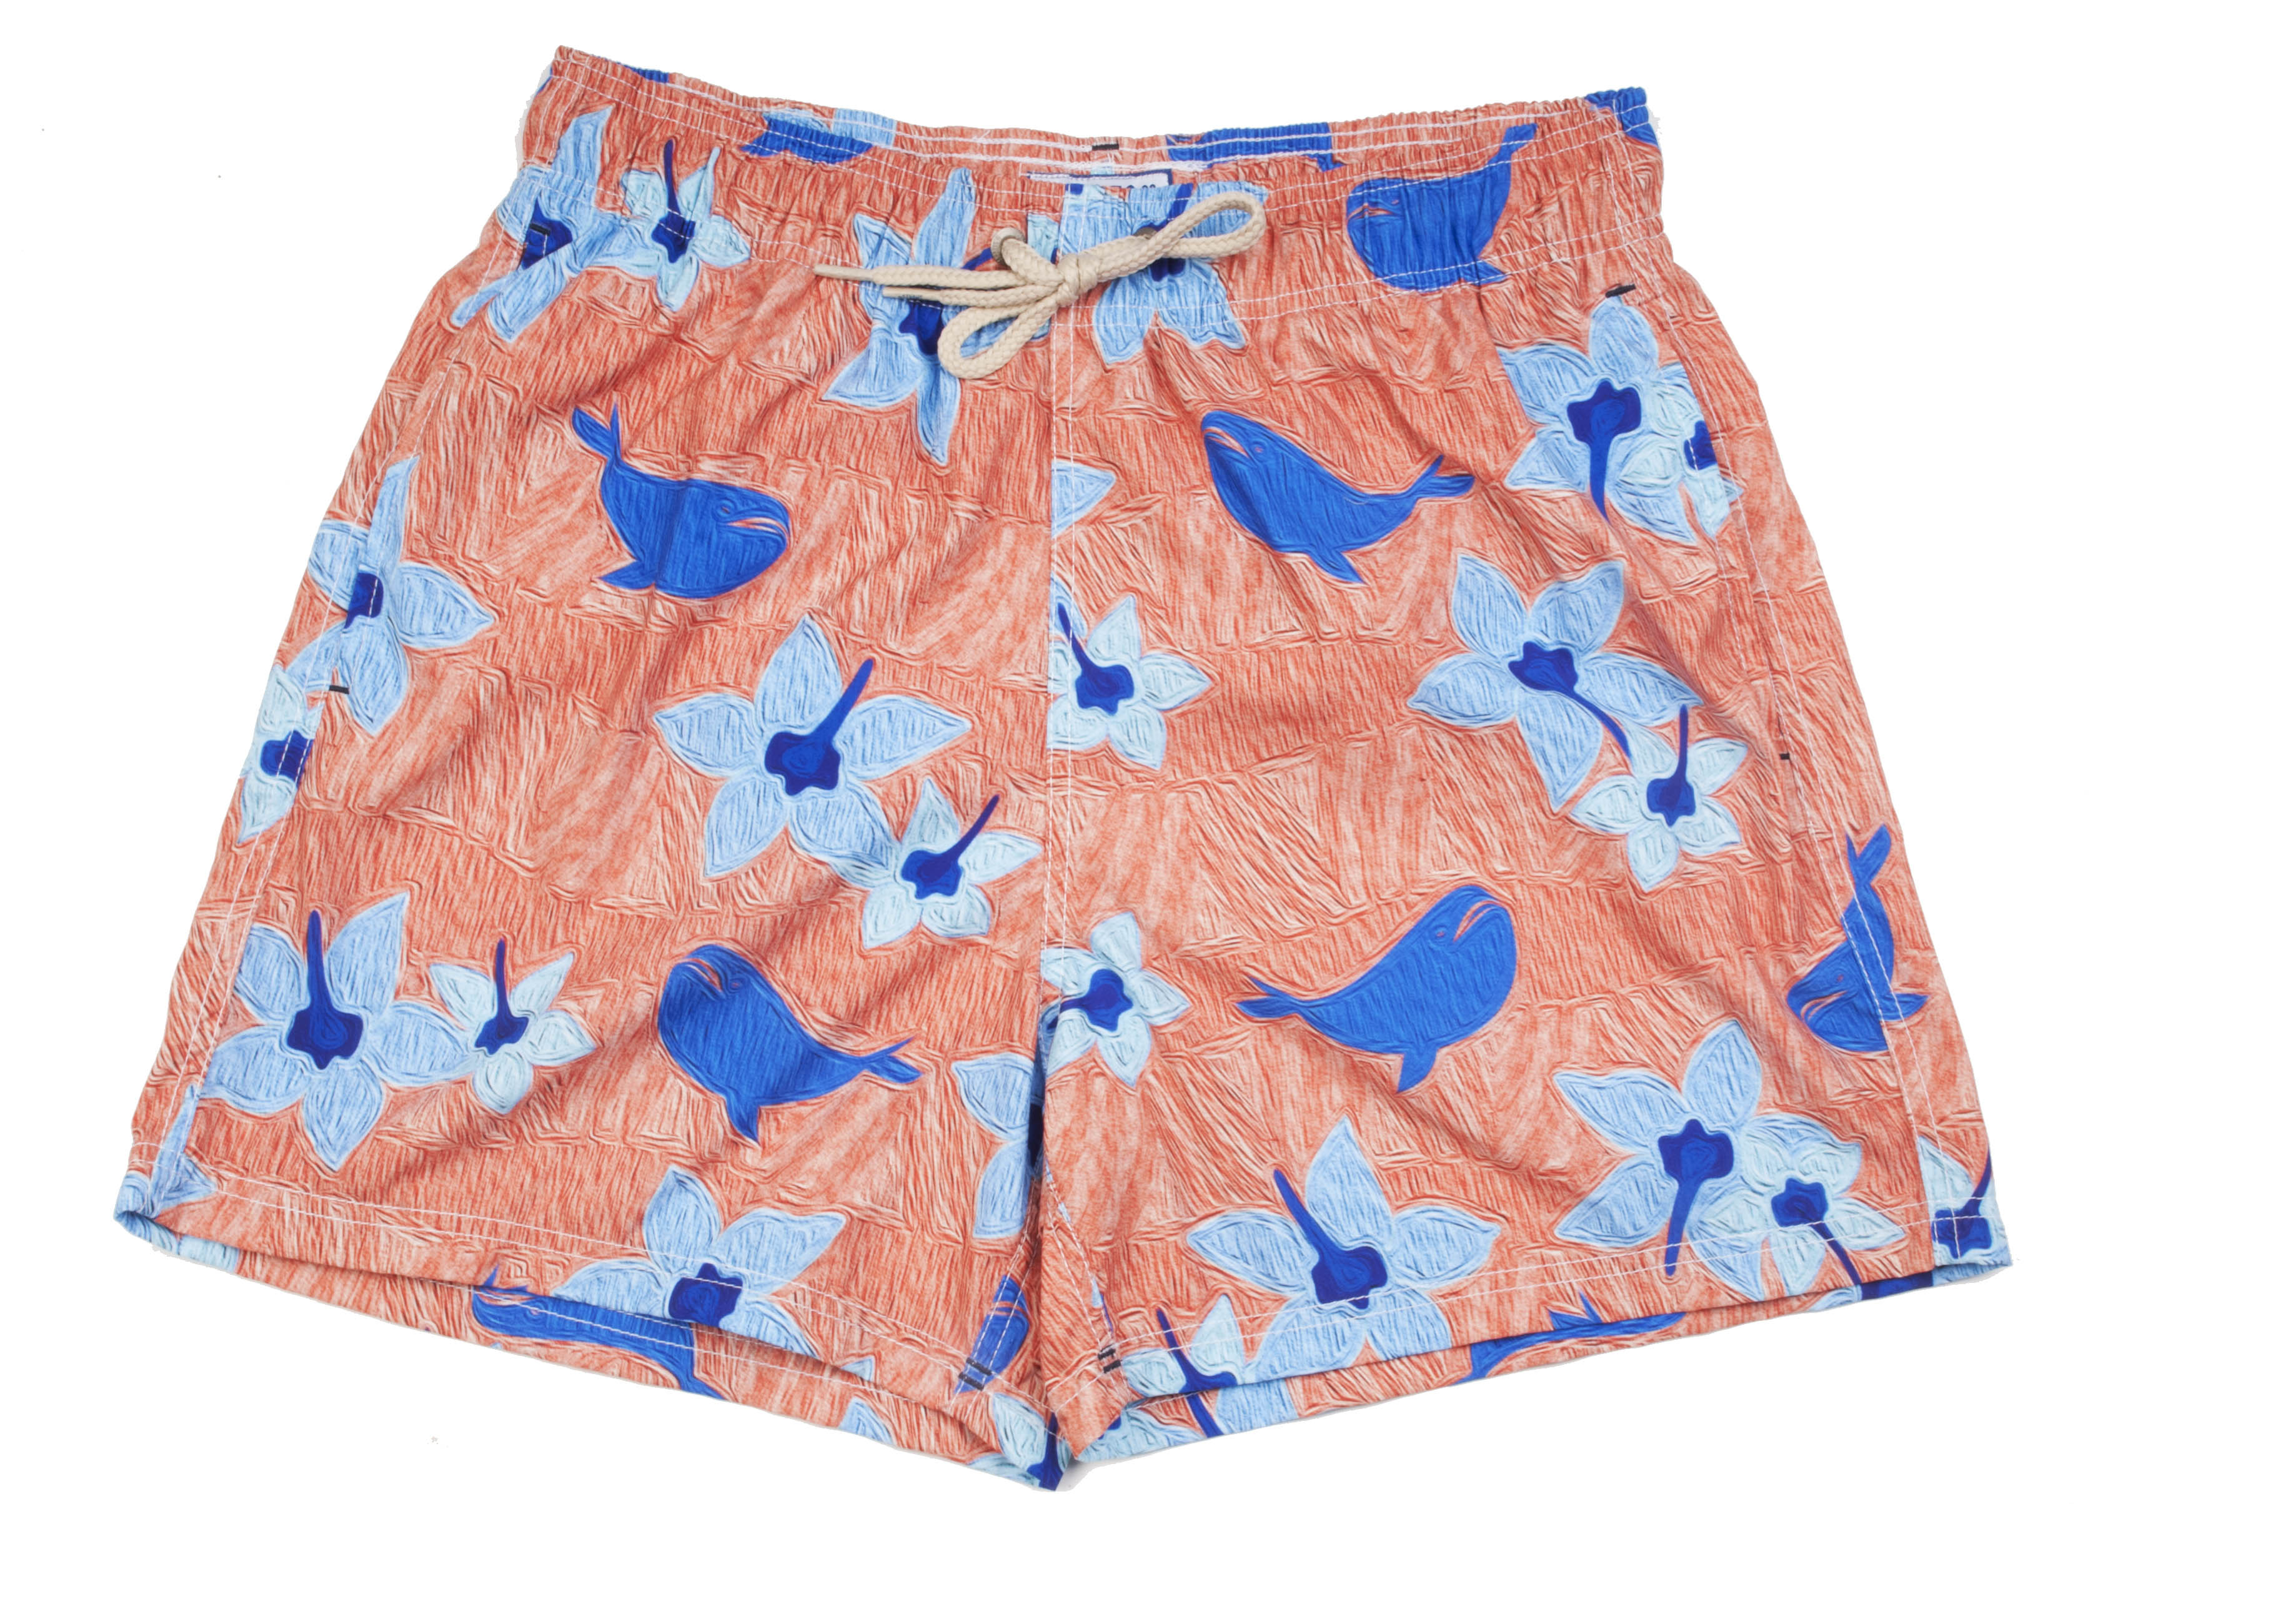 SHORTS.CO - ADULTO R$ 239.90 - INFANTIL R$ 169.90 (20)